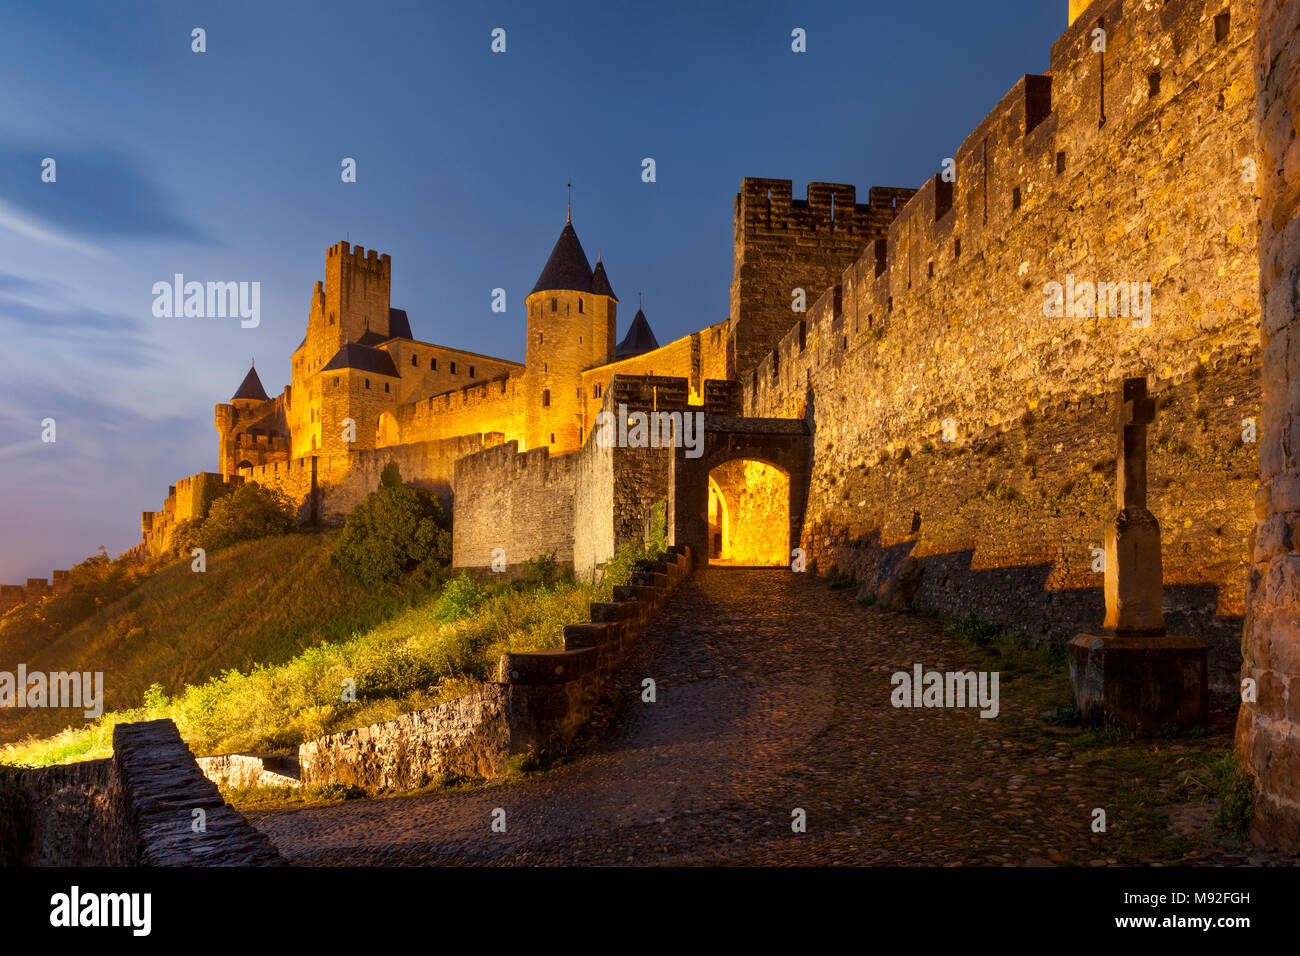 Gated entry to the fortified Cite Carcassonne, Occitanie, France - Stock Image